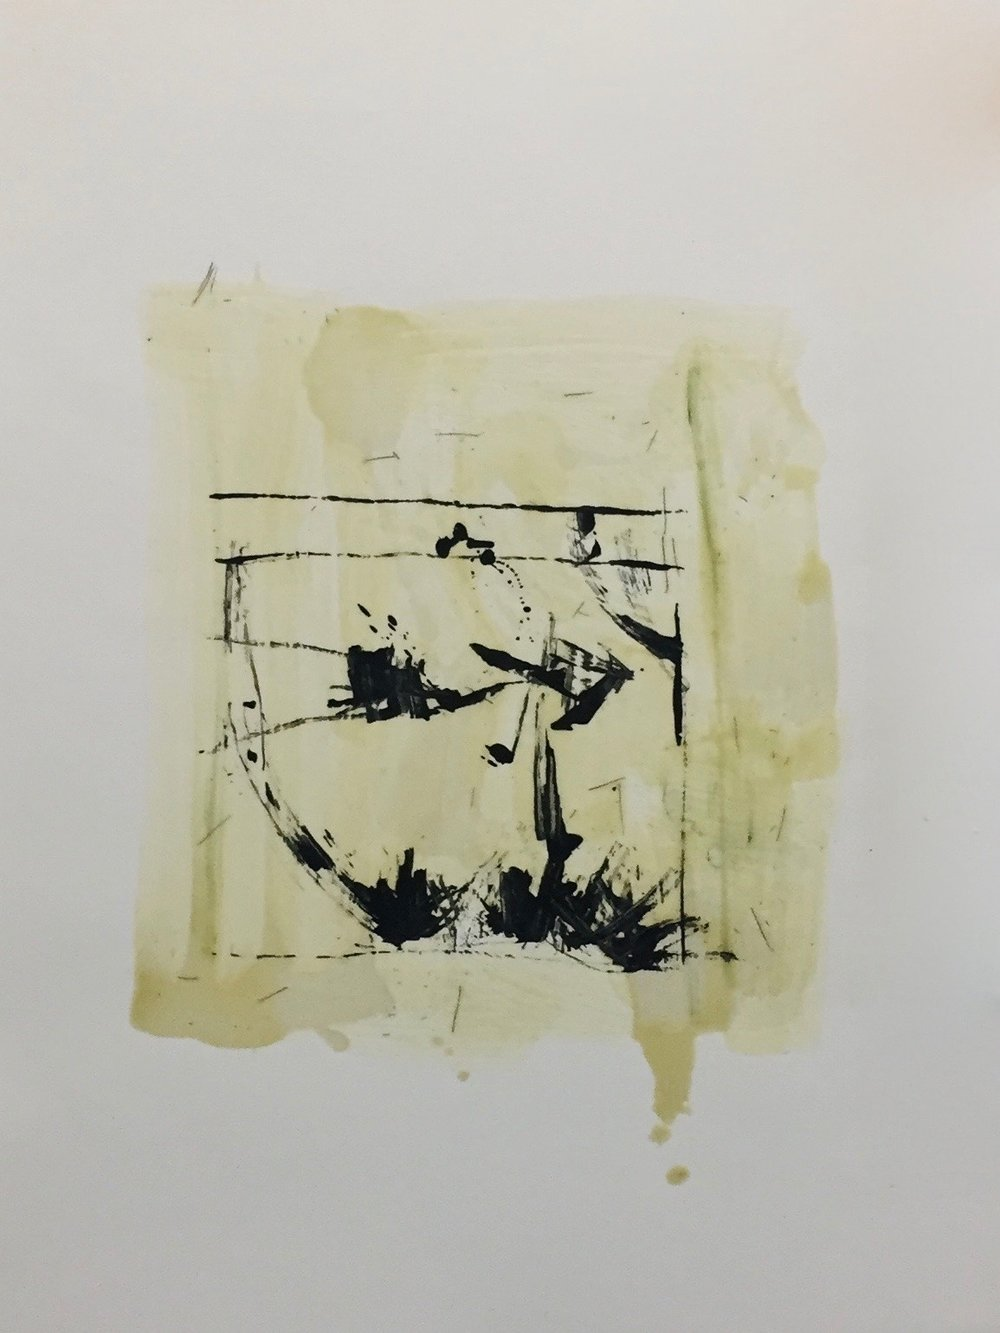 KW-099_Nonfiction 23_Encaustic on paper_2016_22x30.jpg